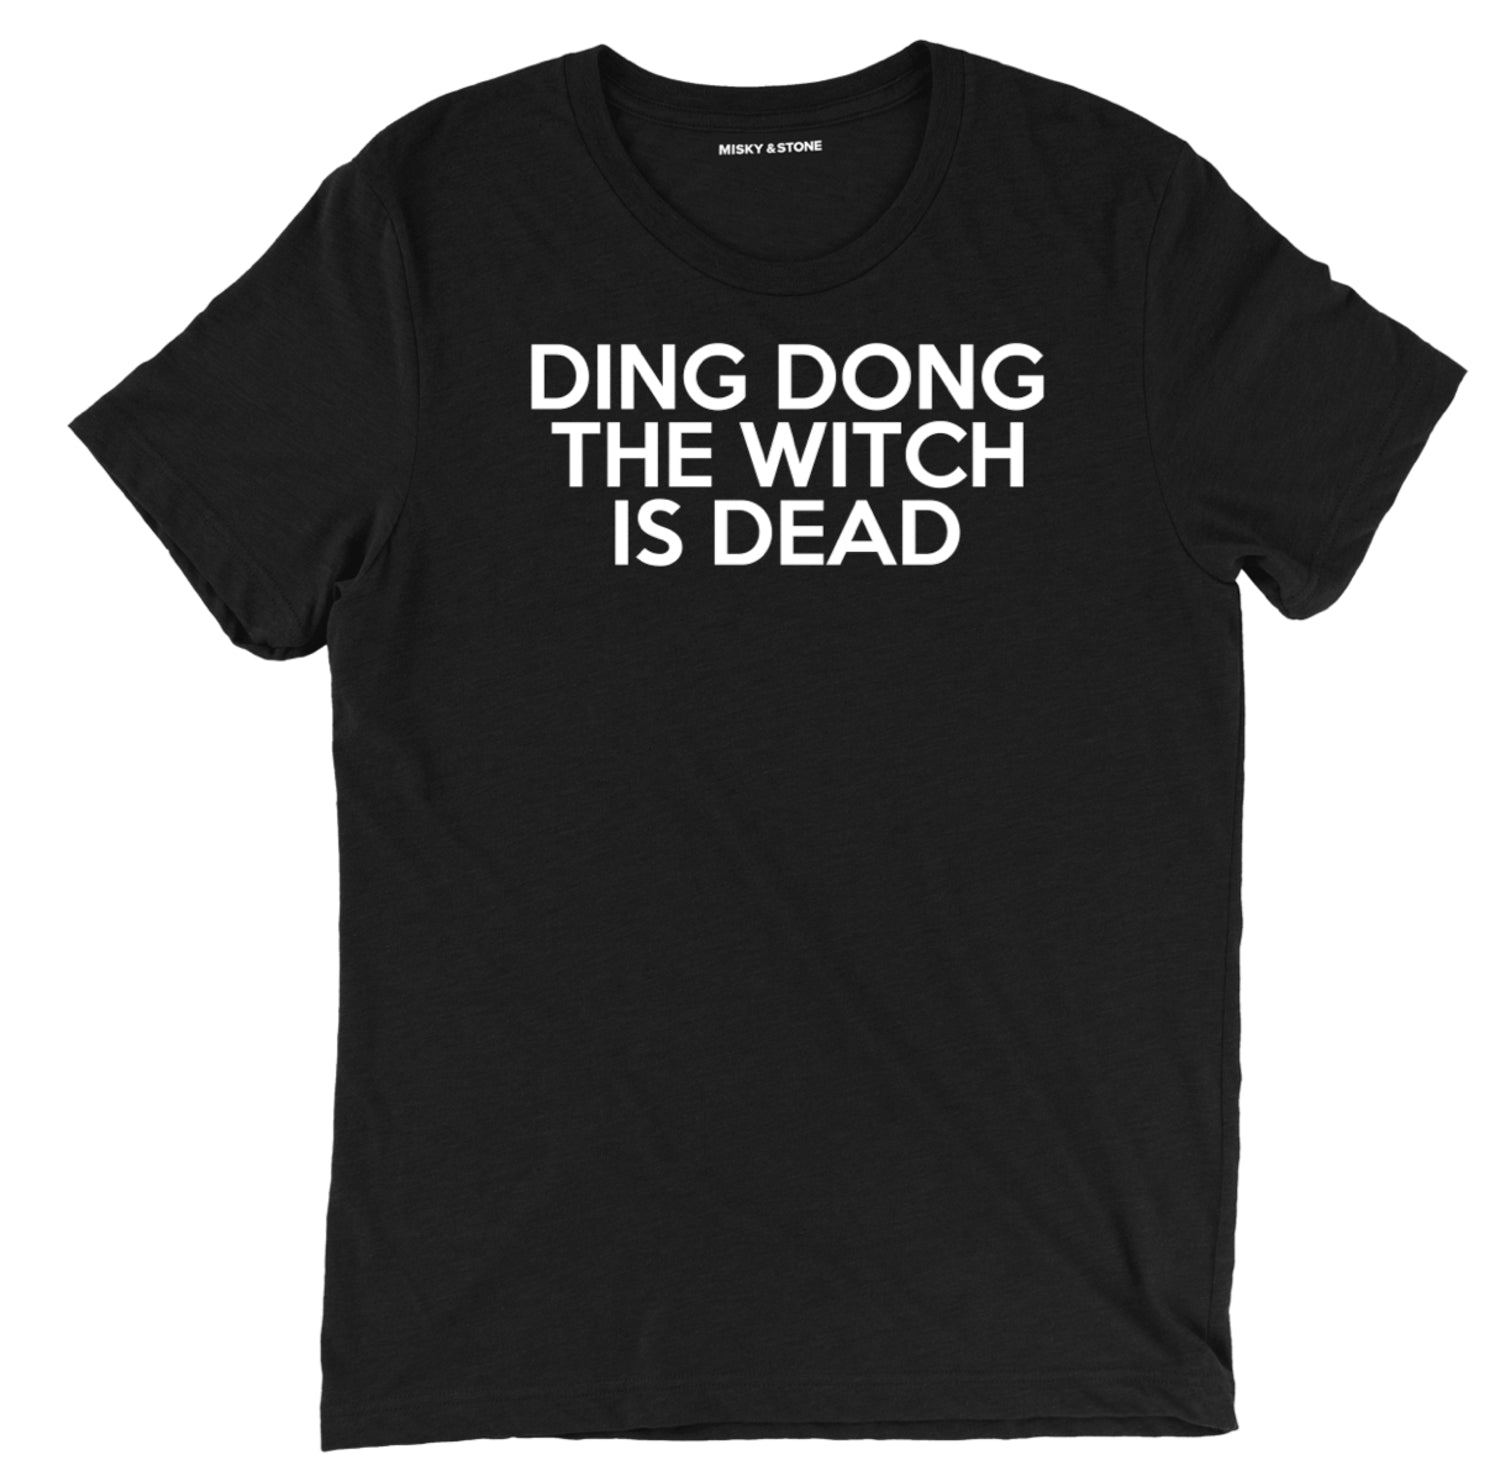 ding dong the witch is dead tee, funny witch wizard of oz tee, wizard of oz witch tee